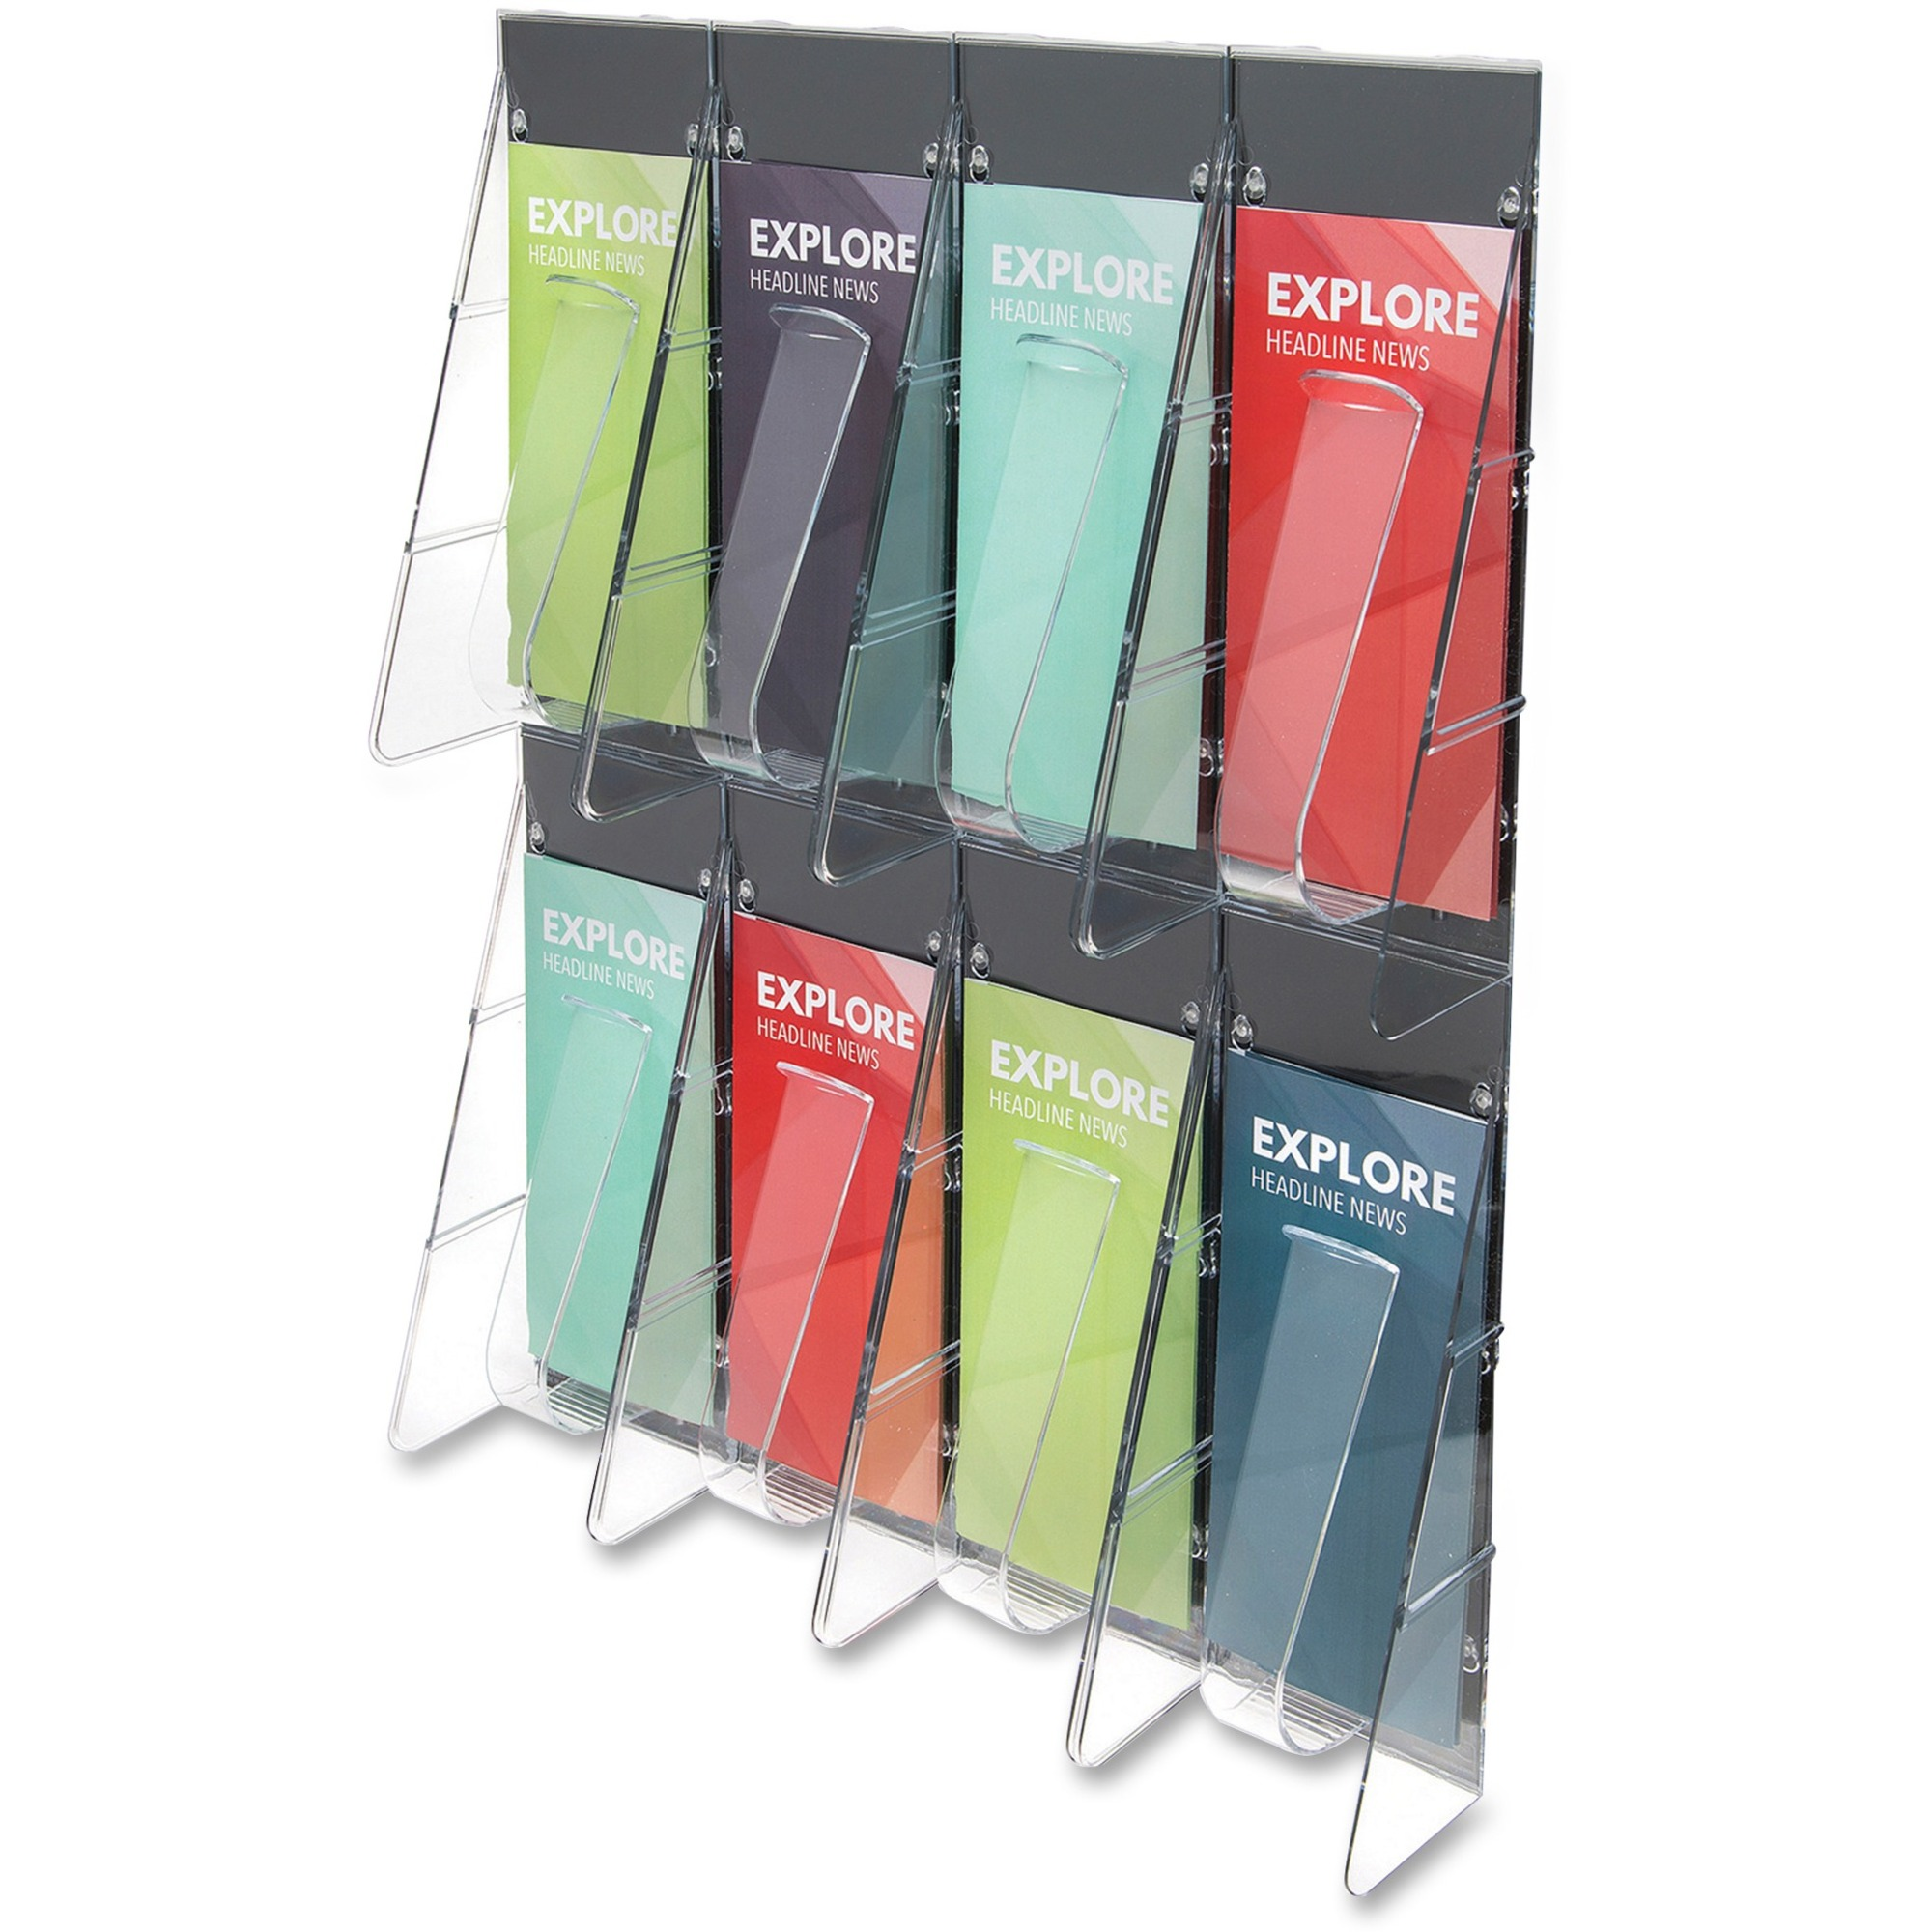 system by display about mounted rack andersson mount l discover all and shelf brochure product the design periodicals find pettersson wall pin magazine karl oak information skala notman slope